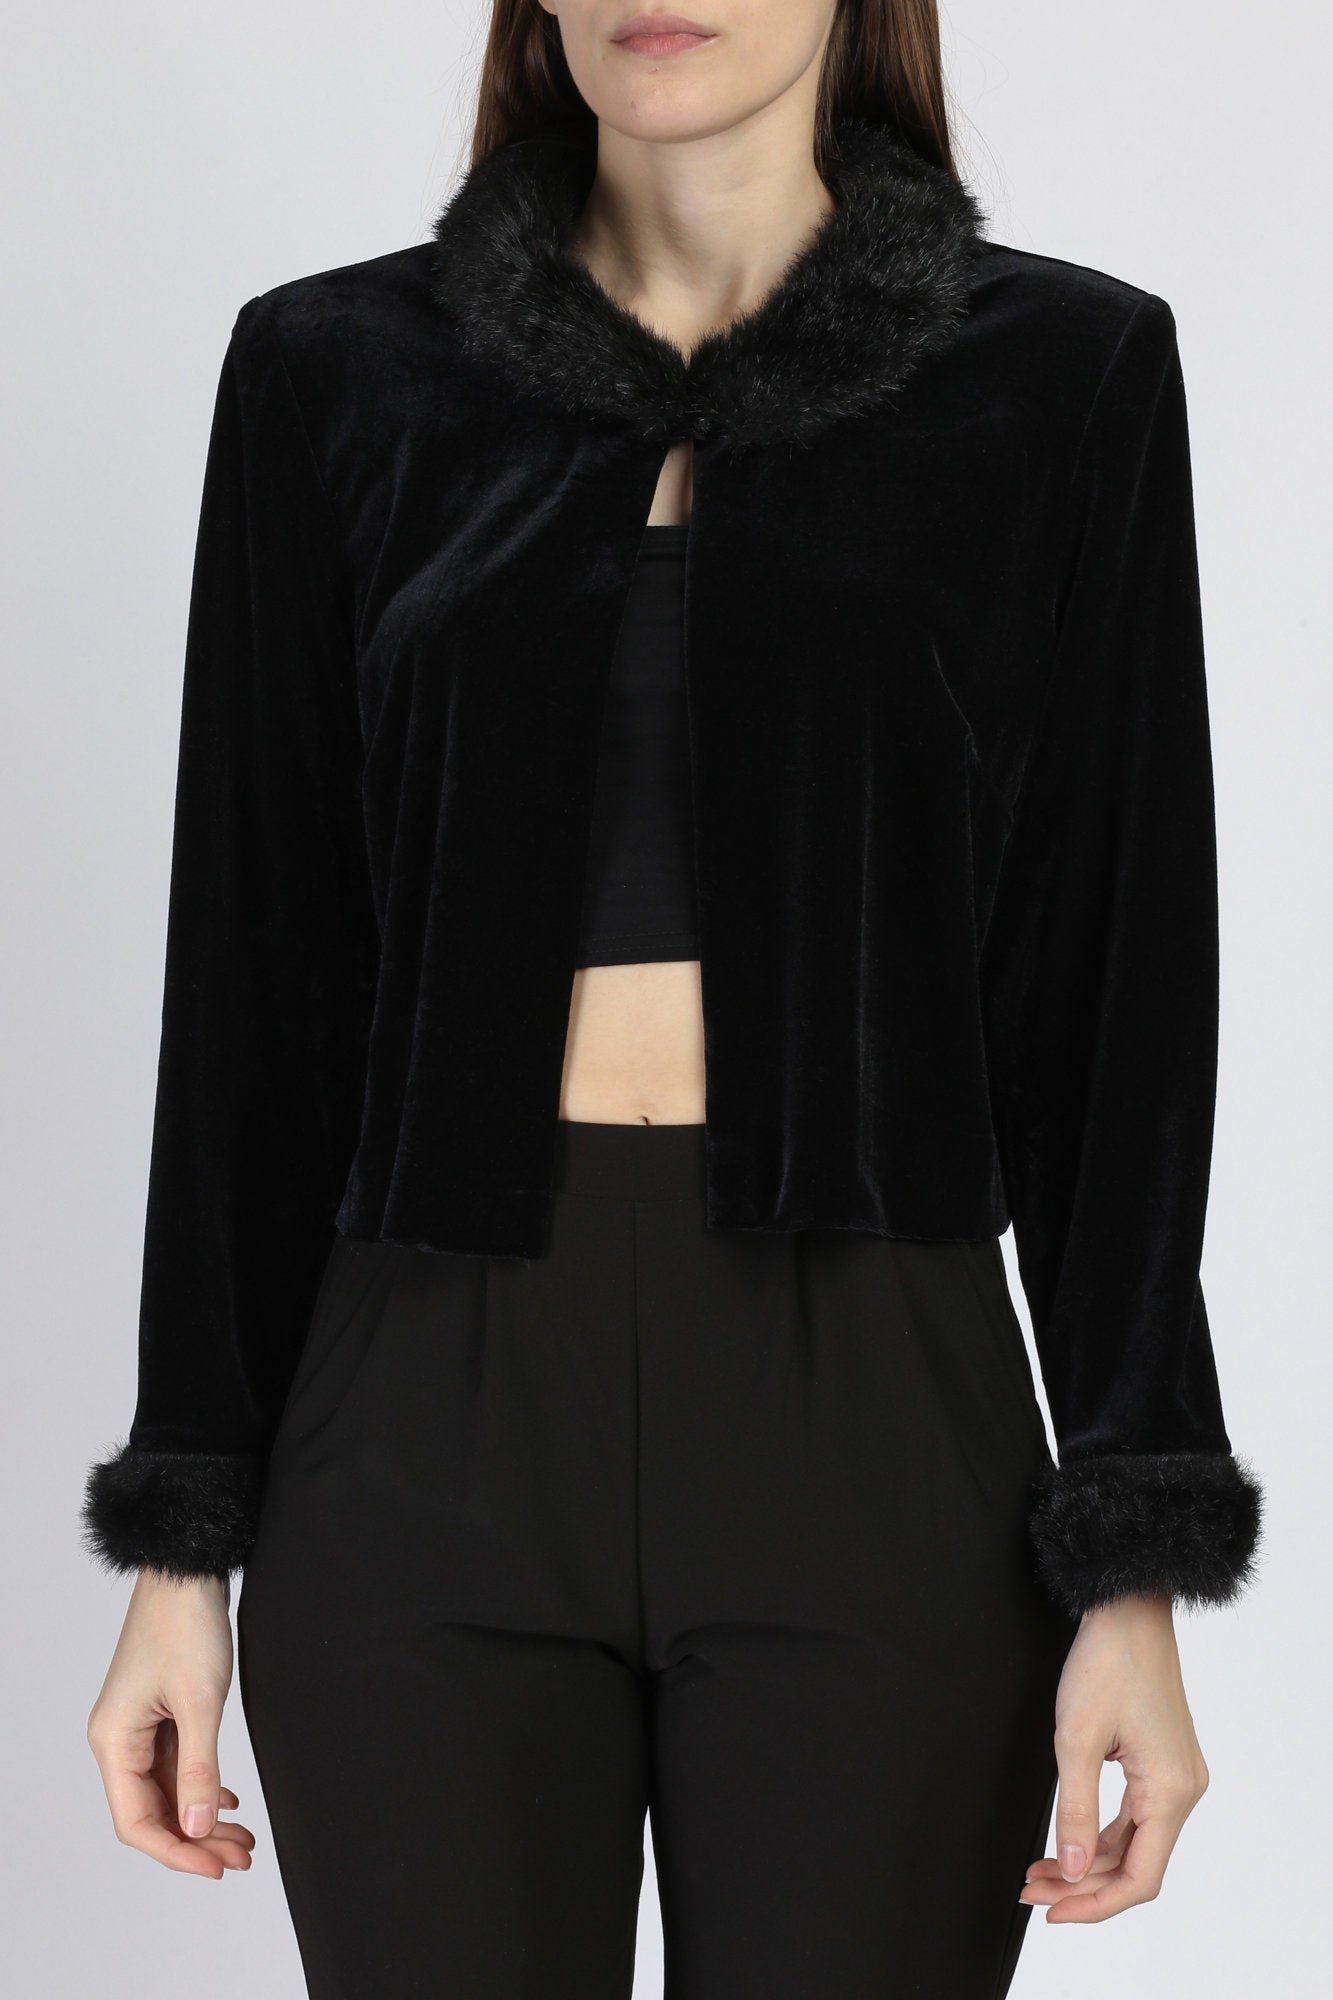 90s Black Velvet Fur Trim Crop Top - Large